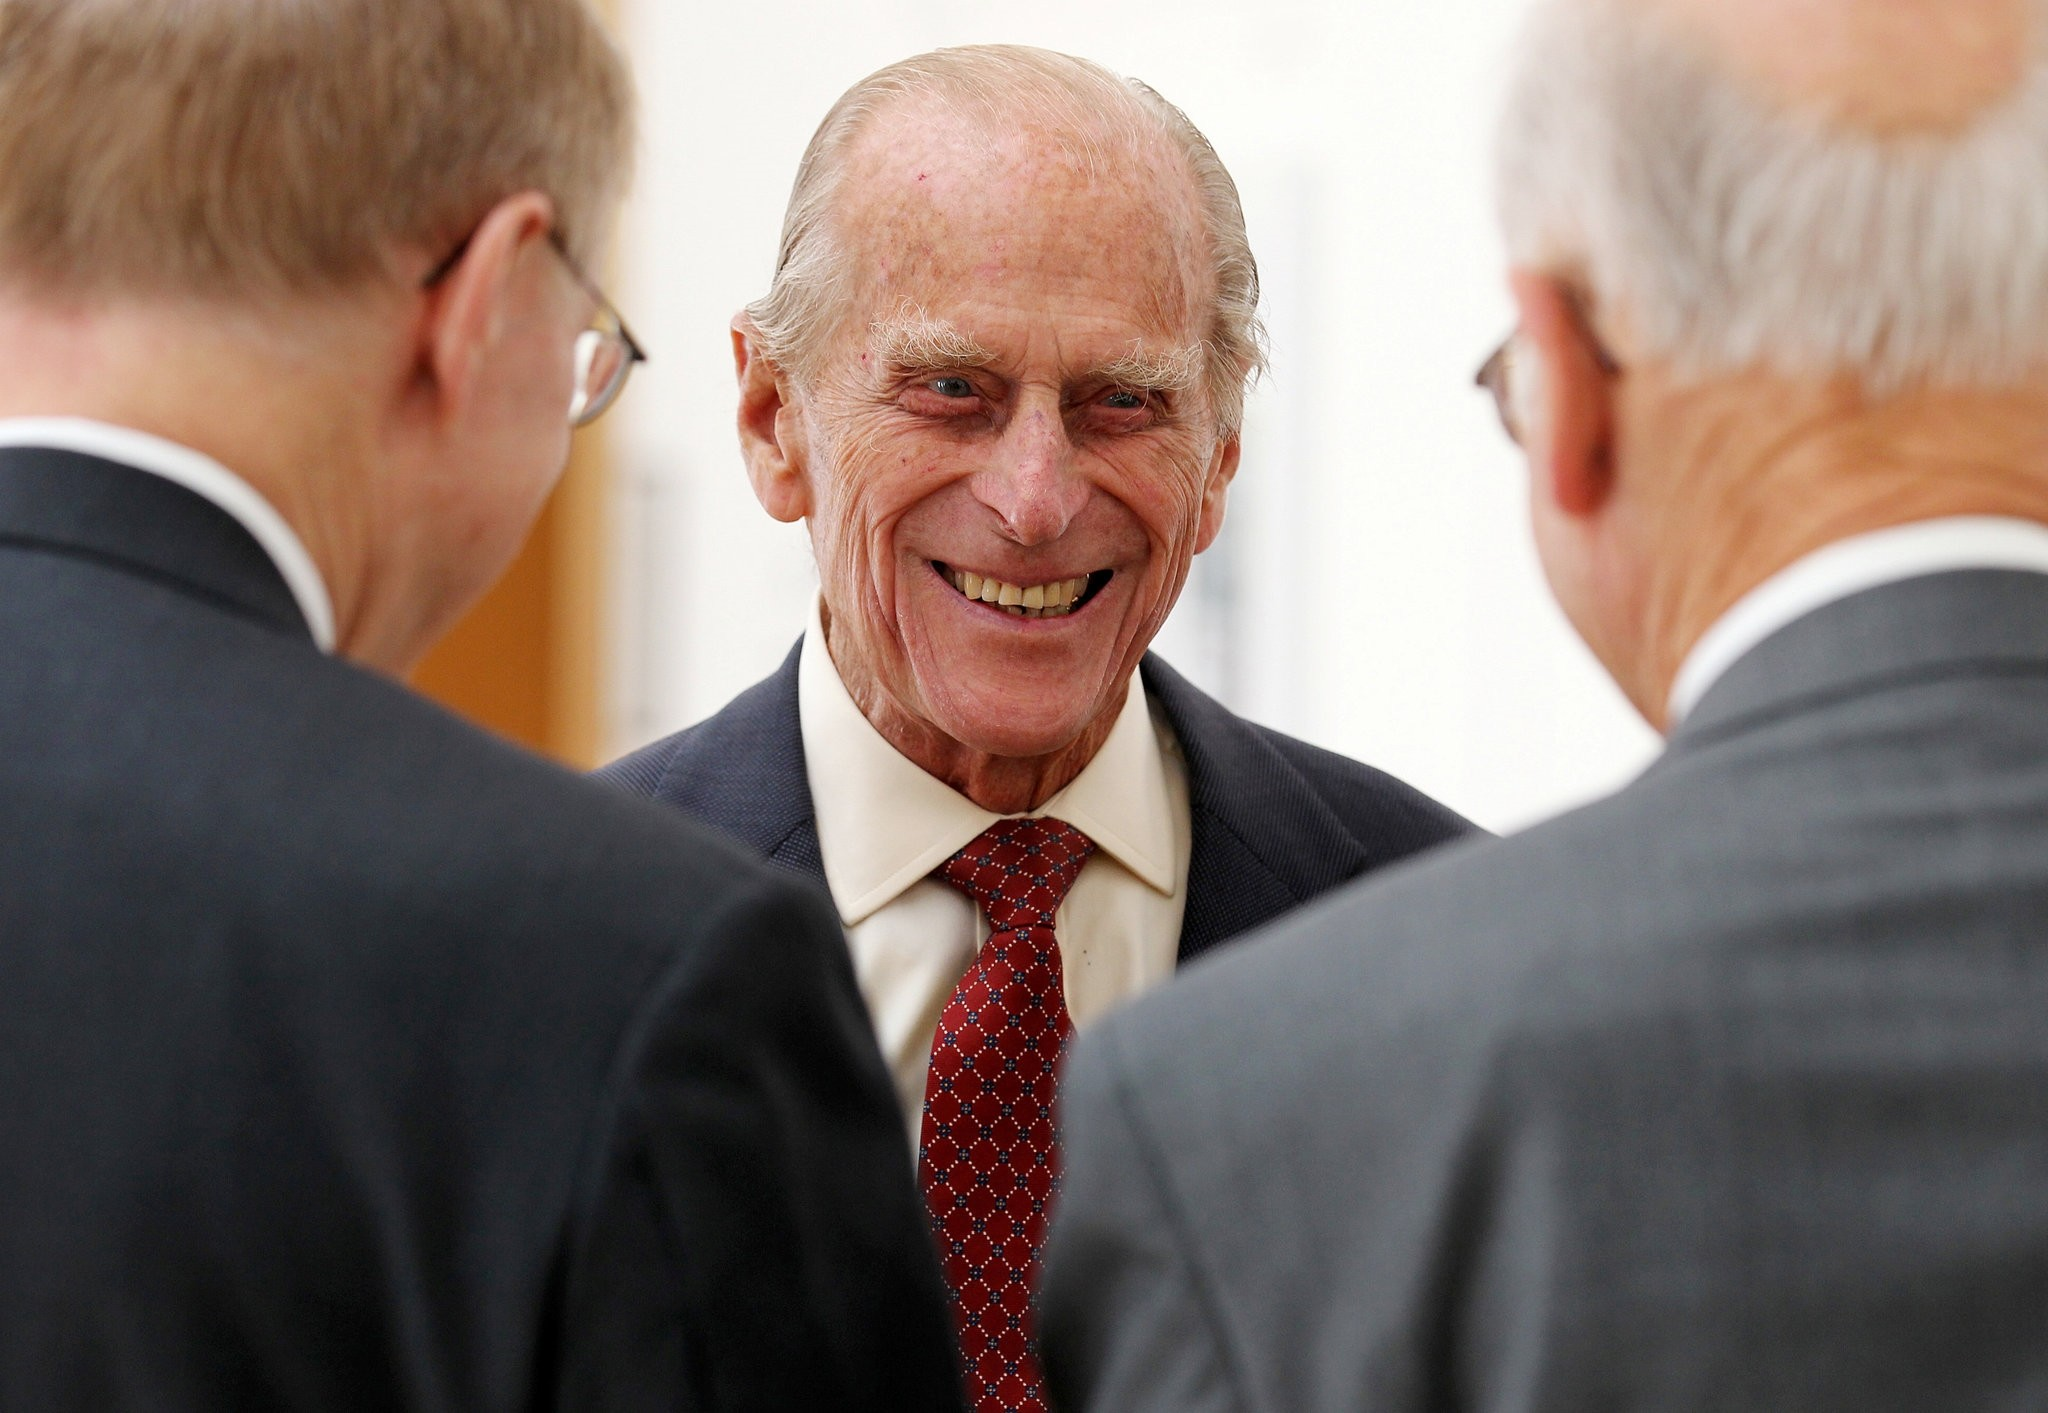 Prince Philip (C) smiles after presenting Royal Medals at the Royal Society of Edinburgh, in Edinburgh August 12, 2013. (REUTERS Photo)